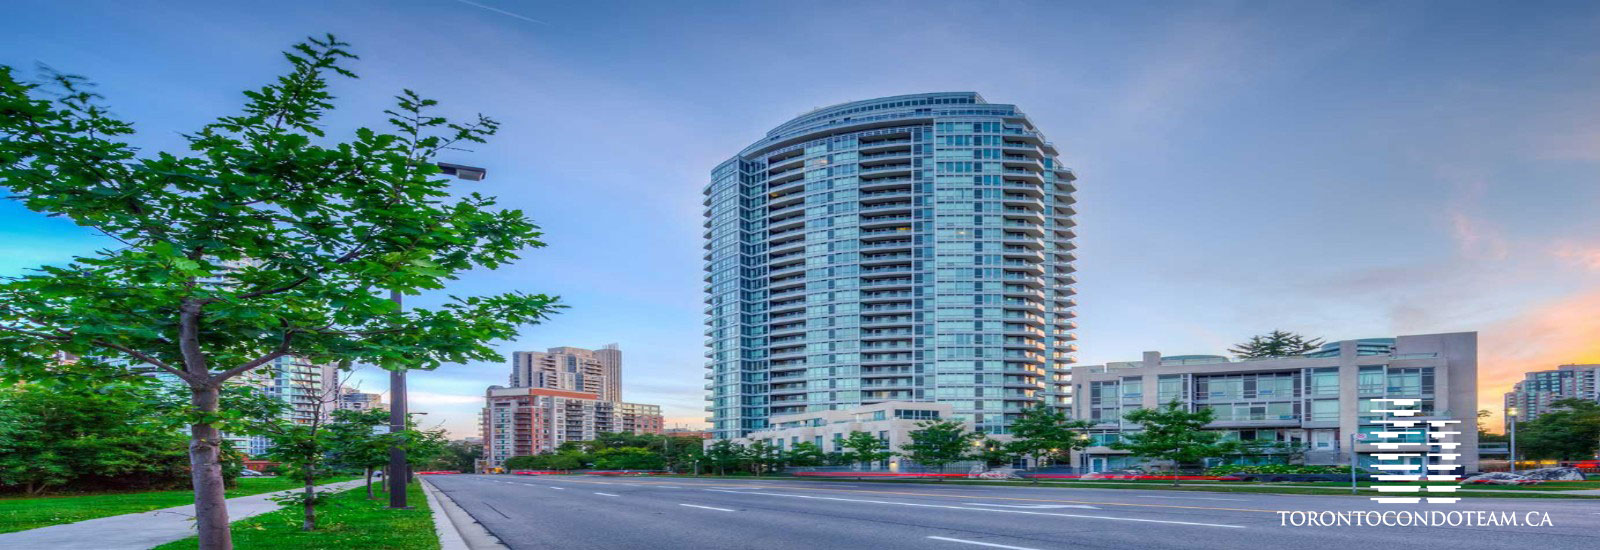 578 Doris Avenue 18 Holmes Avenue & 21-31 Olive Avenue Condos For Sale